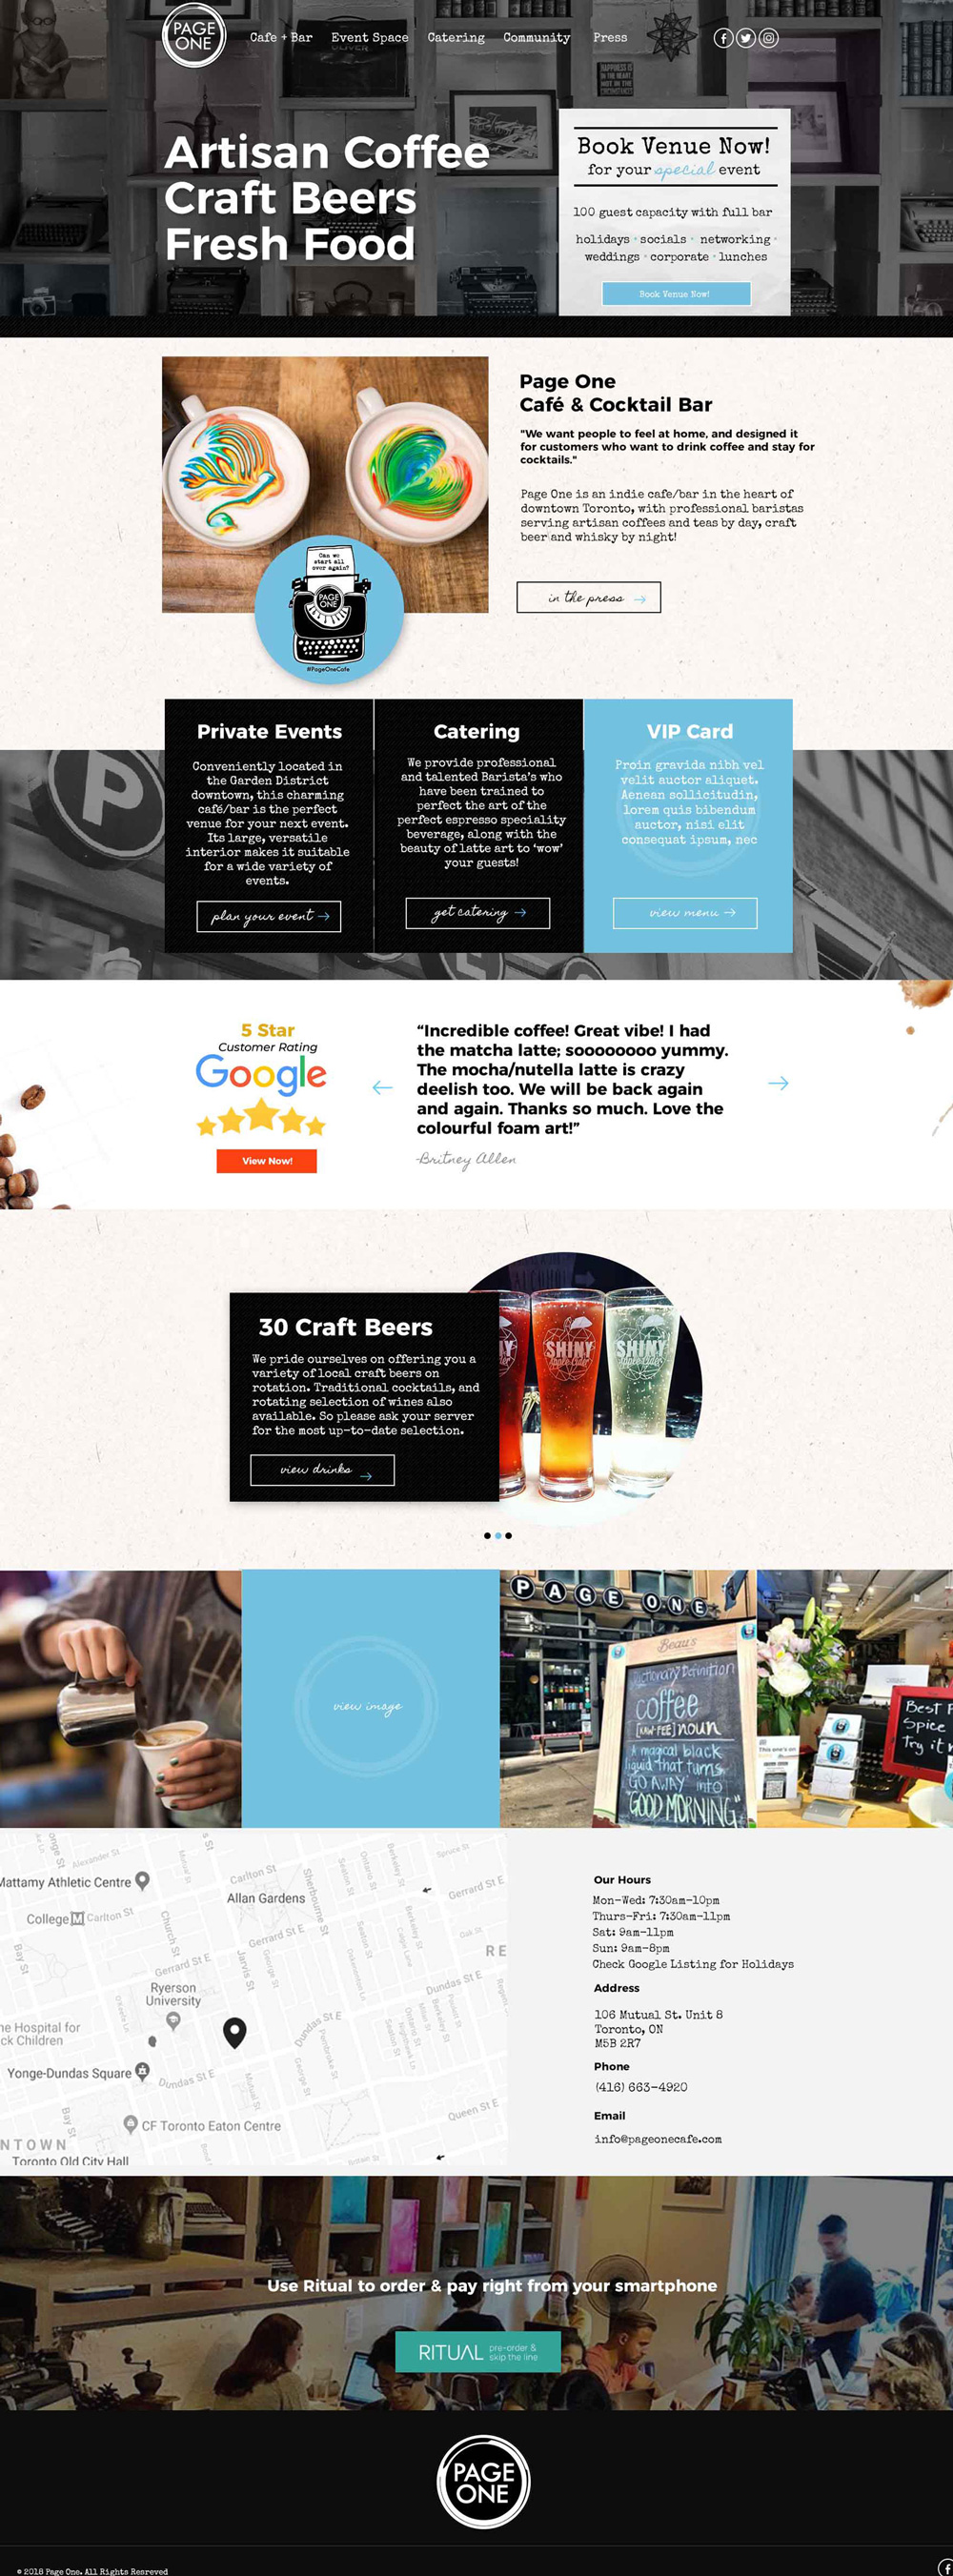 website design coffe shop website page one